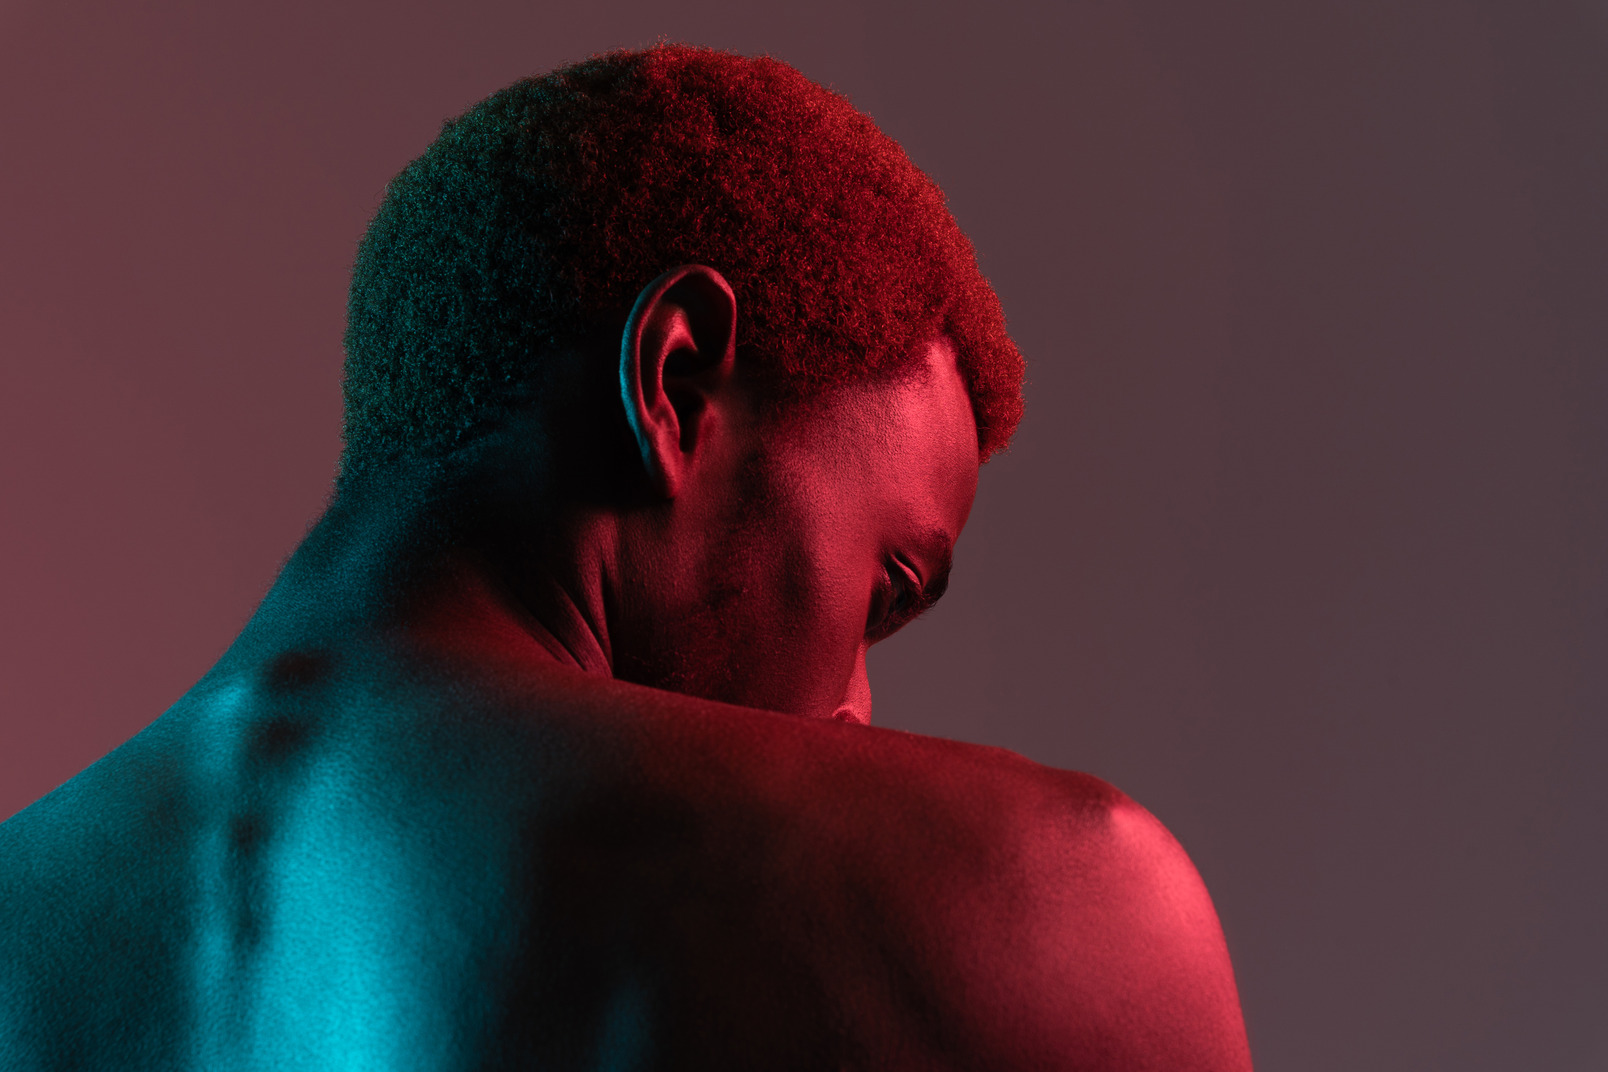 Back view of a young black man